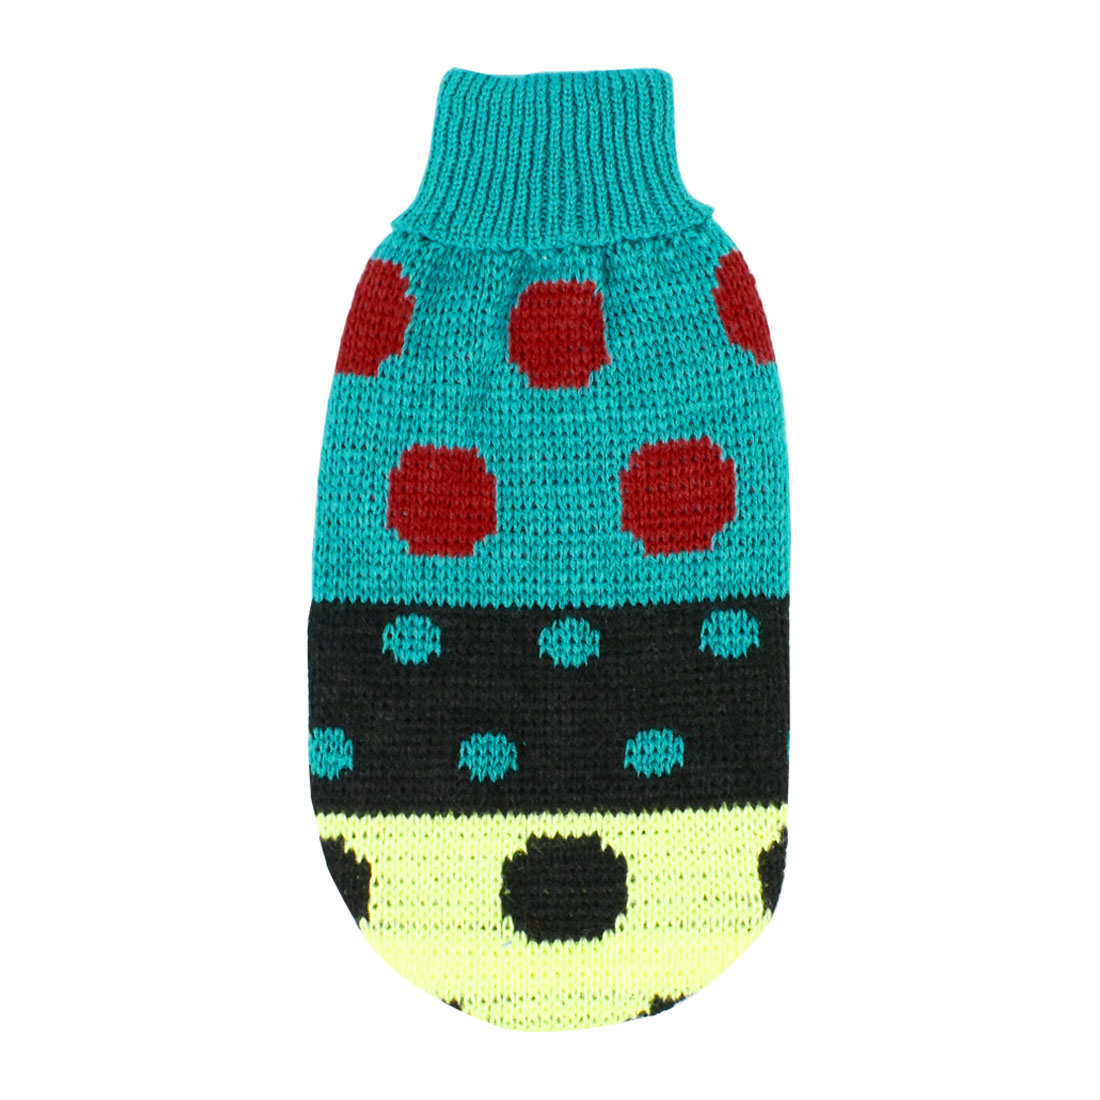 Pet Dog Chihuahua Yorkie Clothes Sweater Apparel Teal Green Winter Knitwear XXS